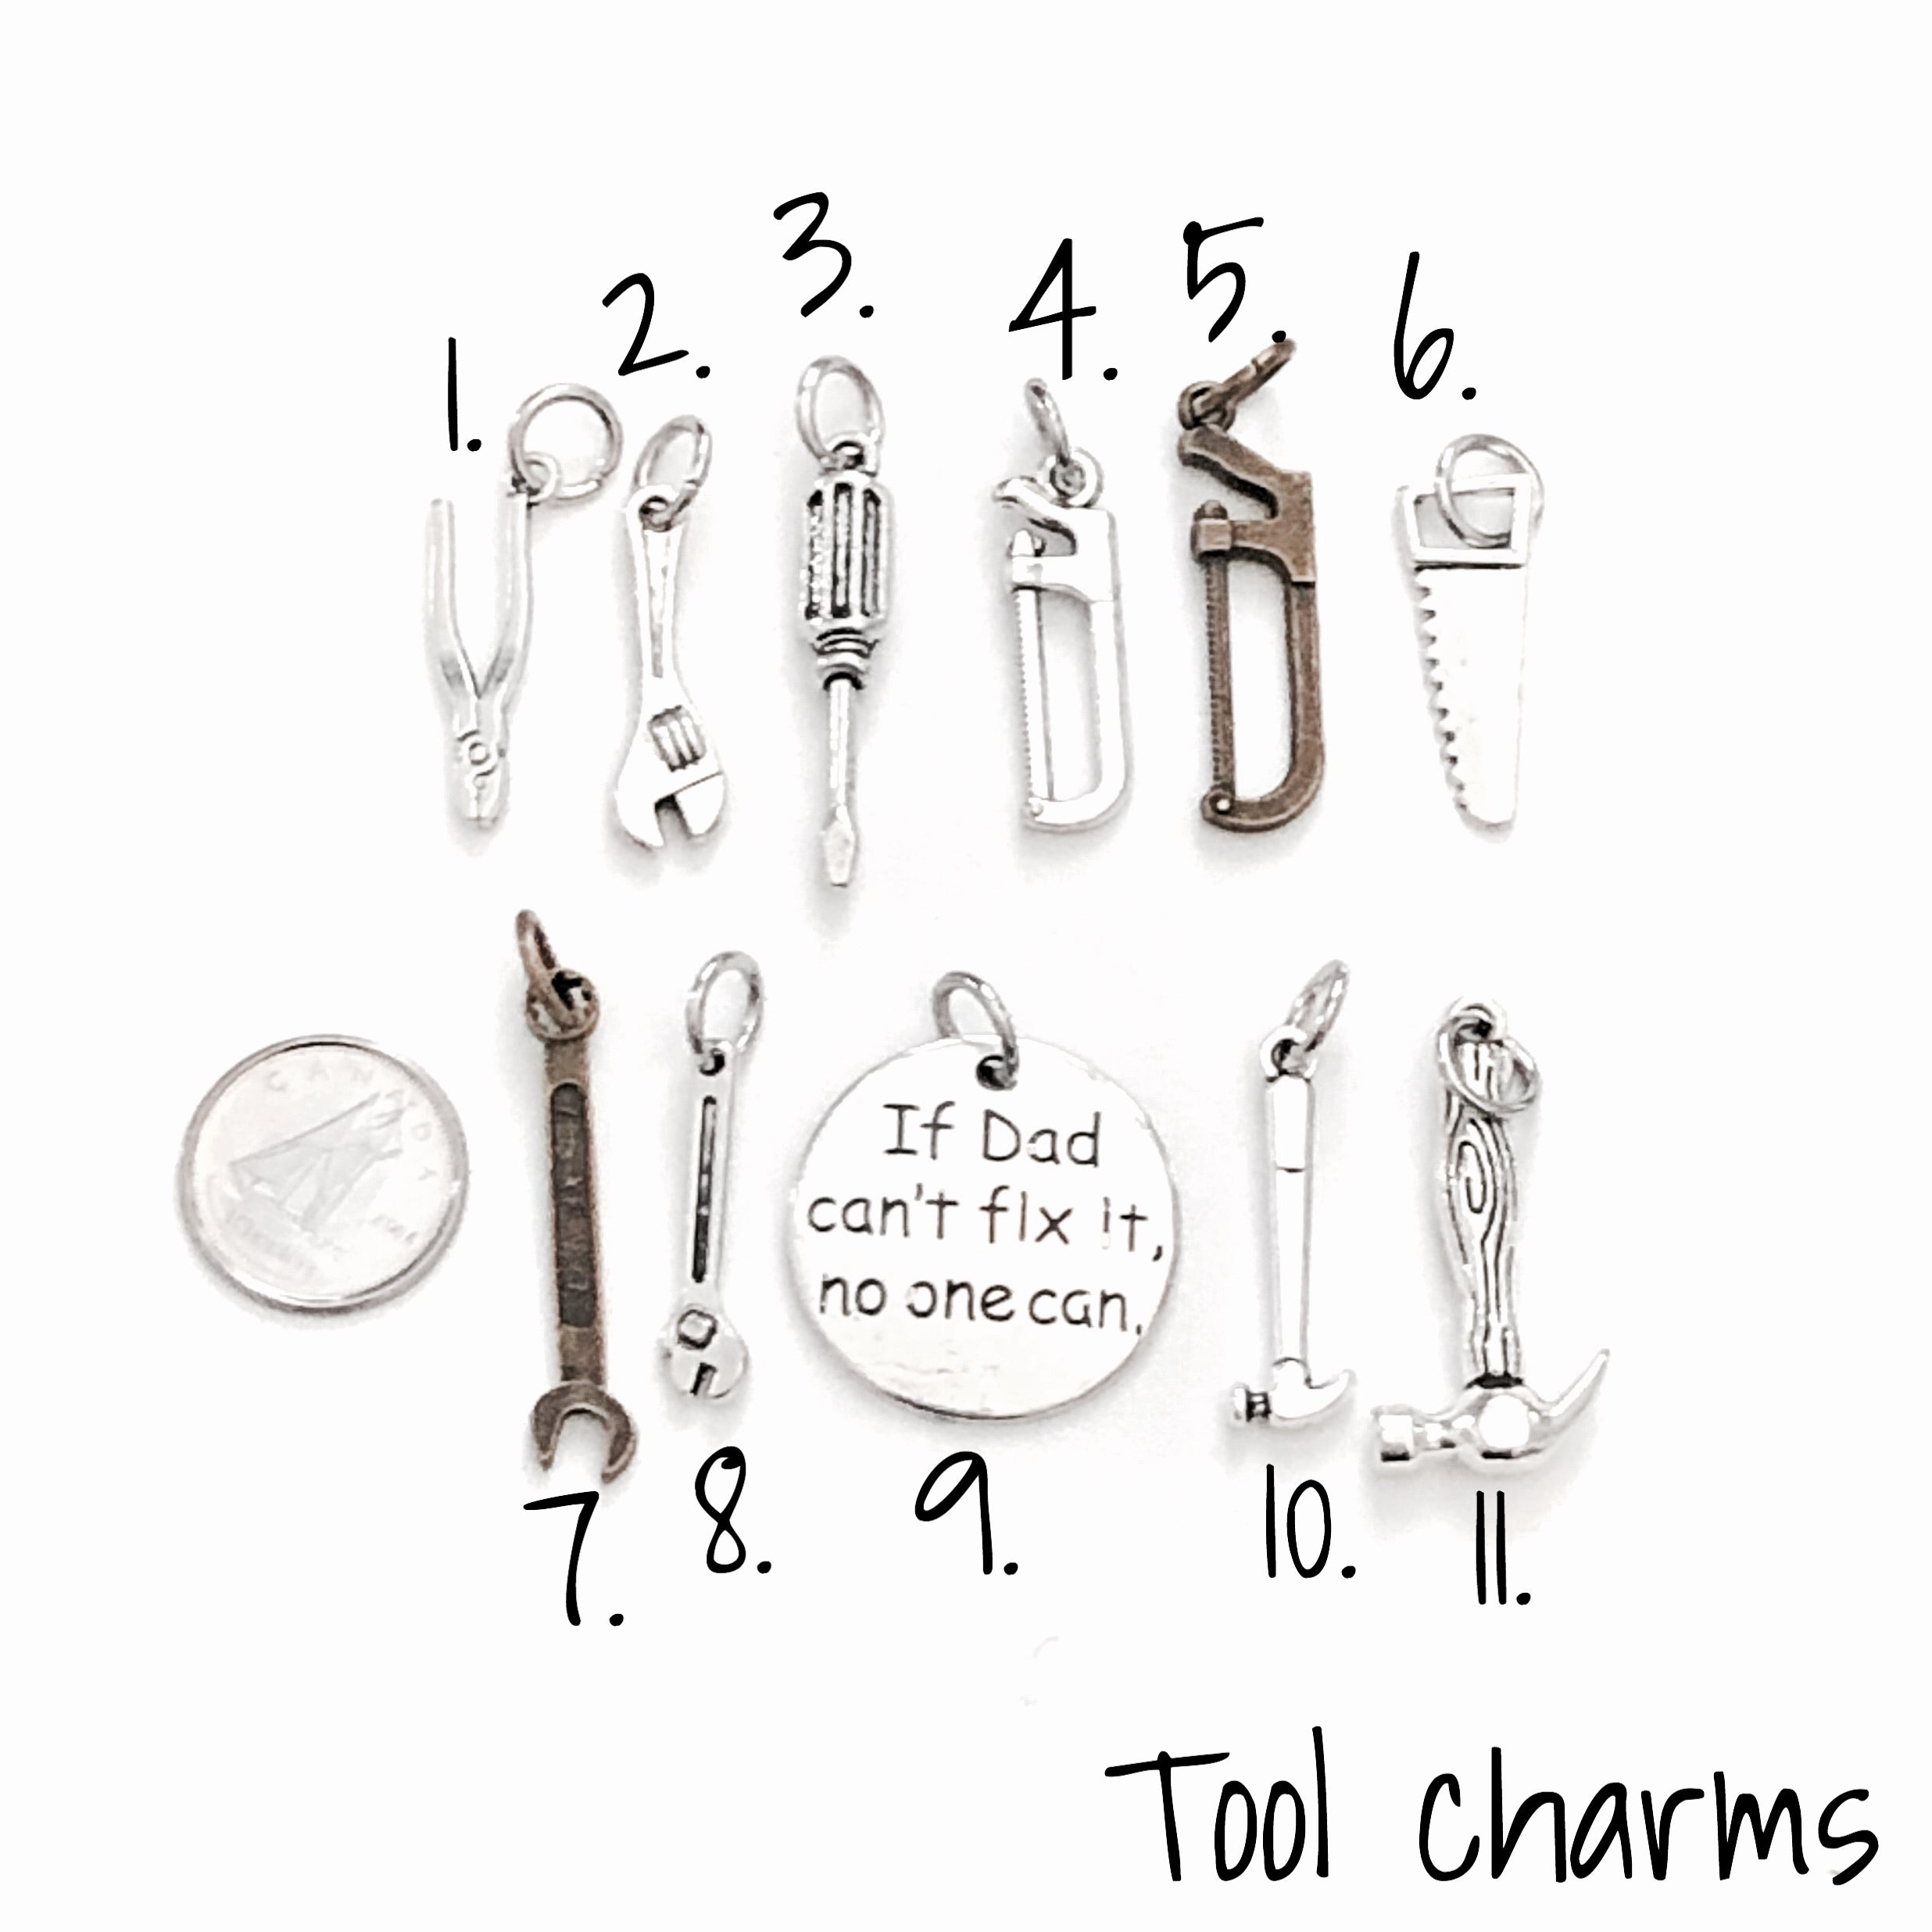 Tools charm selection